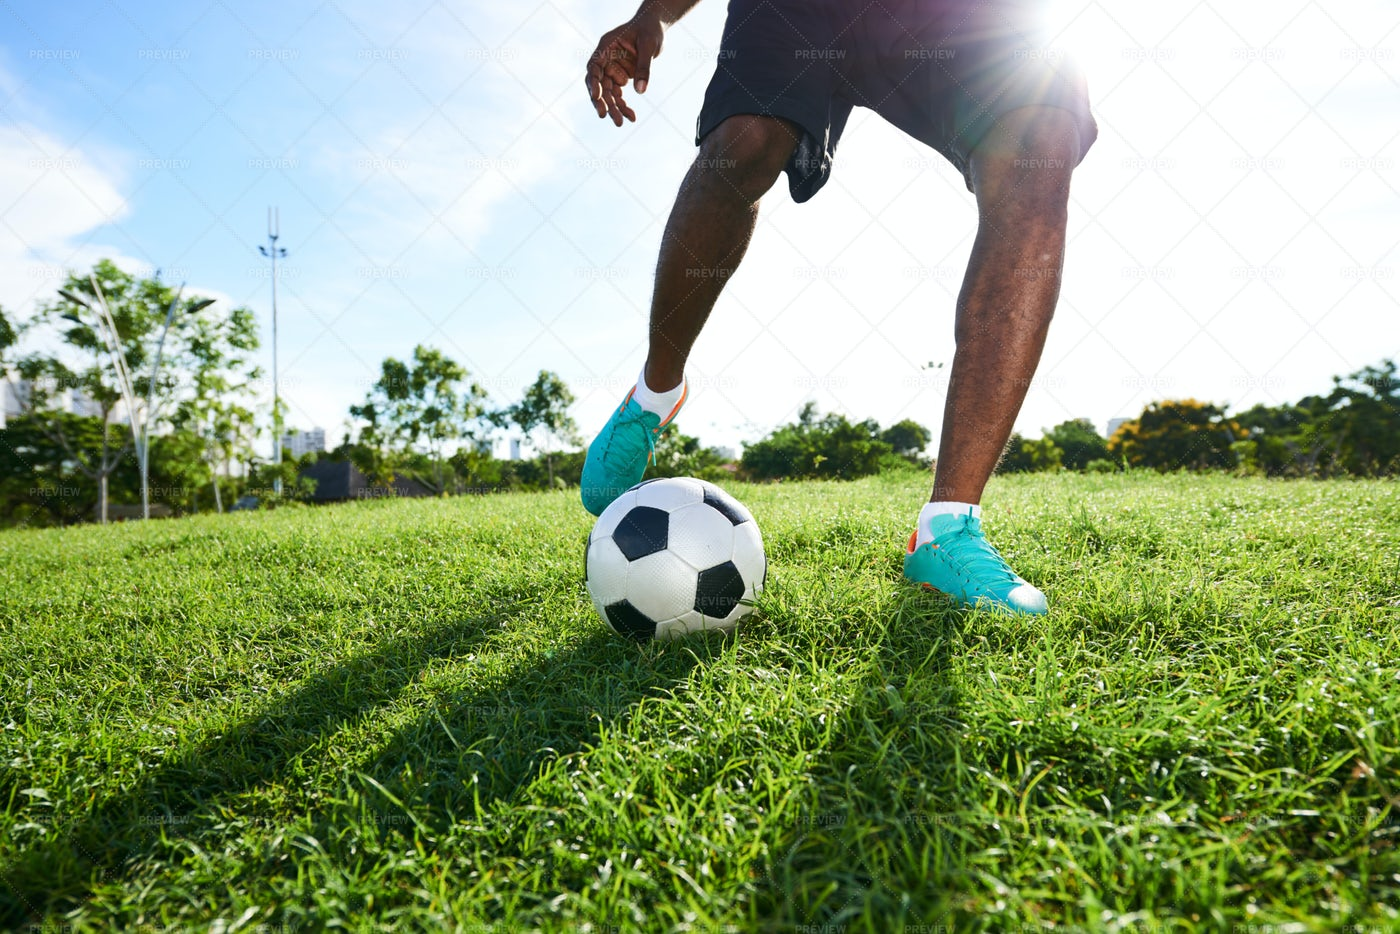 Playing Soccer On Spacious Pitch: Stock Photos